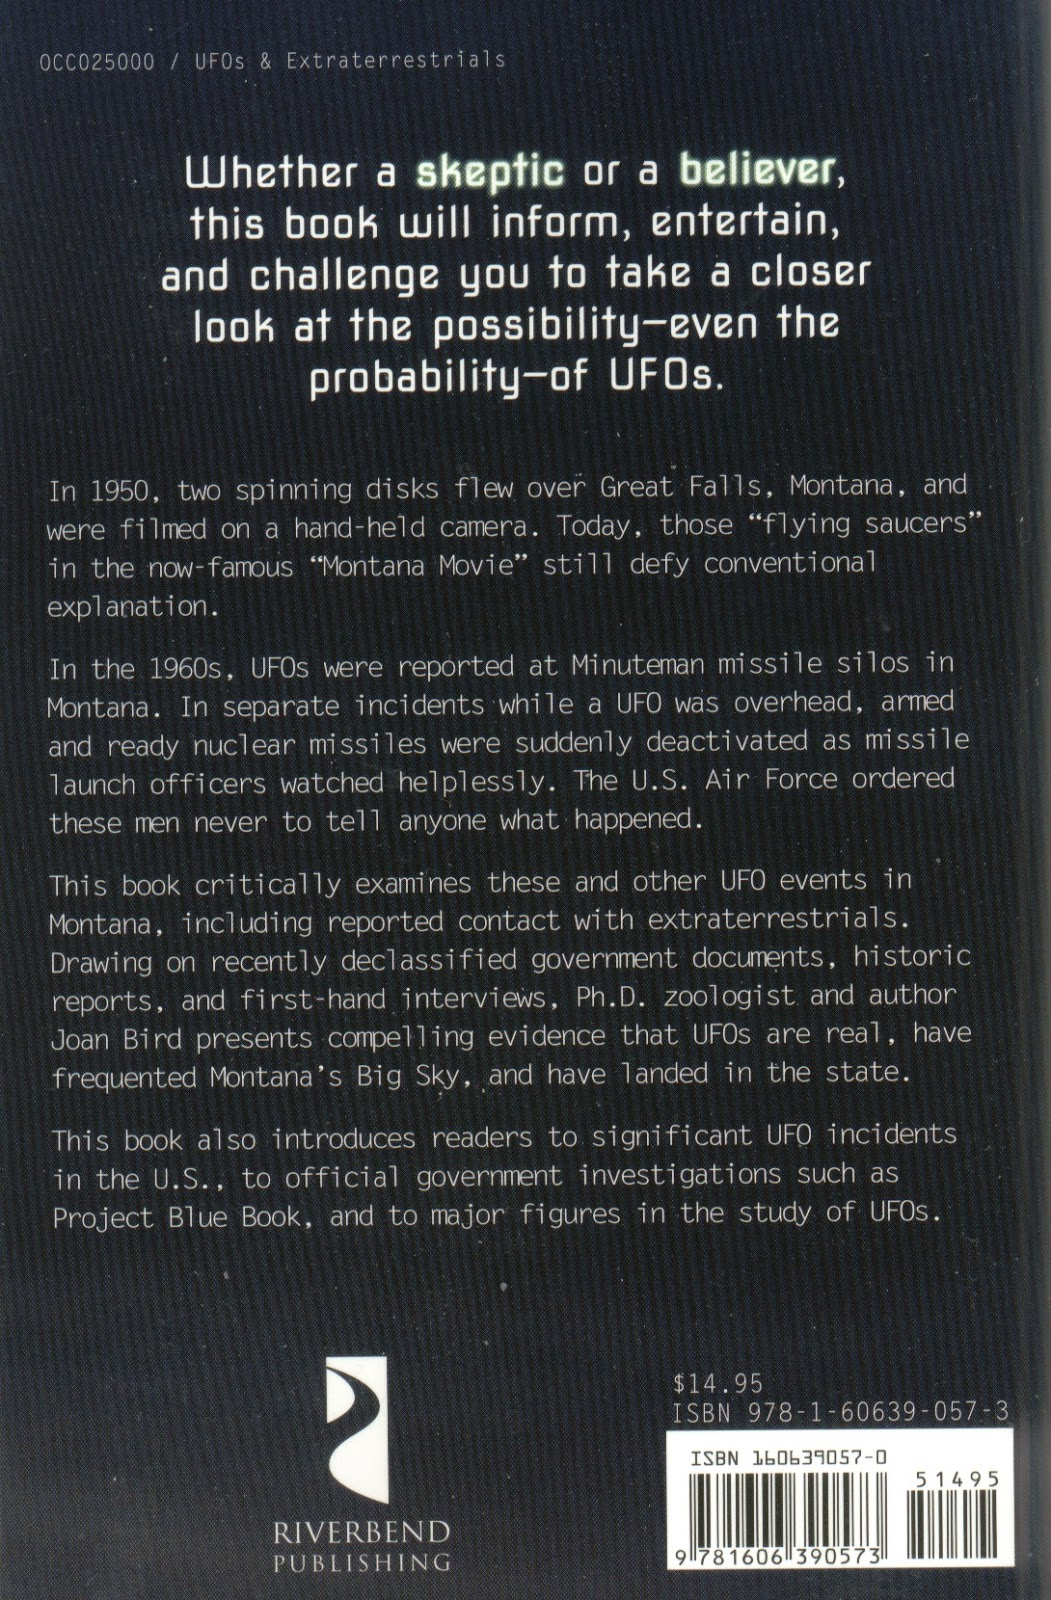 ... : MONTANA UFOS AND EXTRATERRESTRIALS includes Mariana and the Movie Ufo 2013 Movie